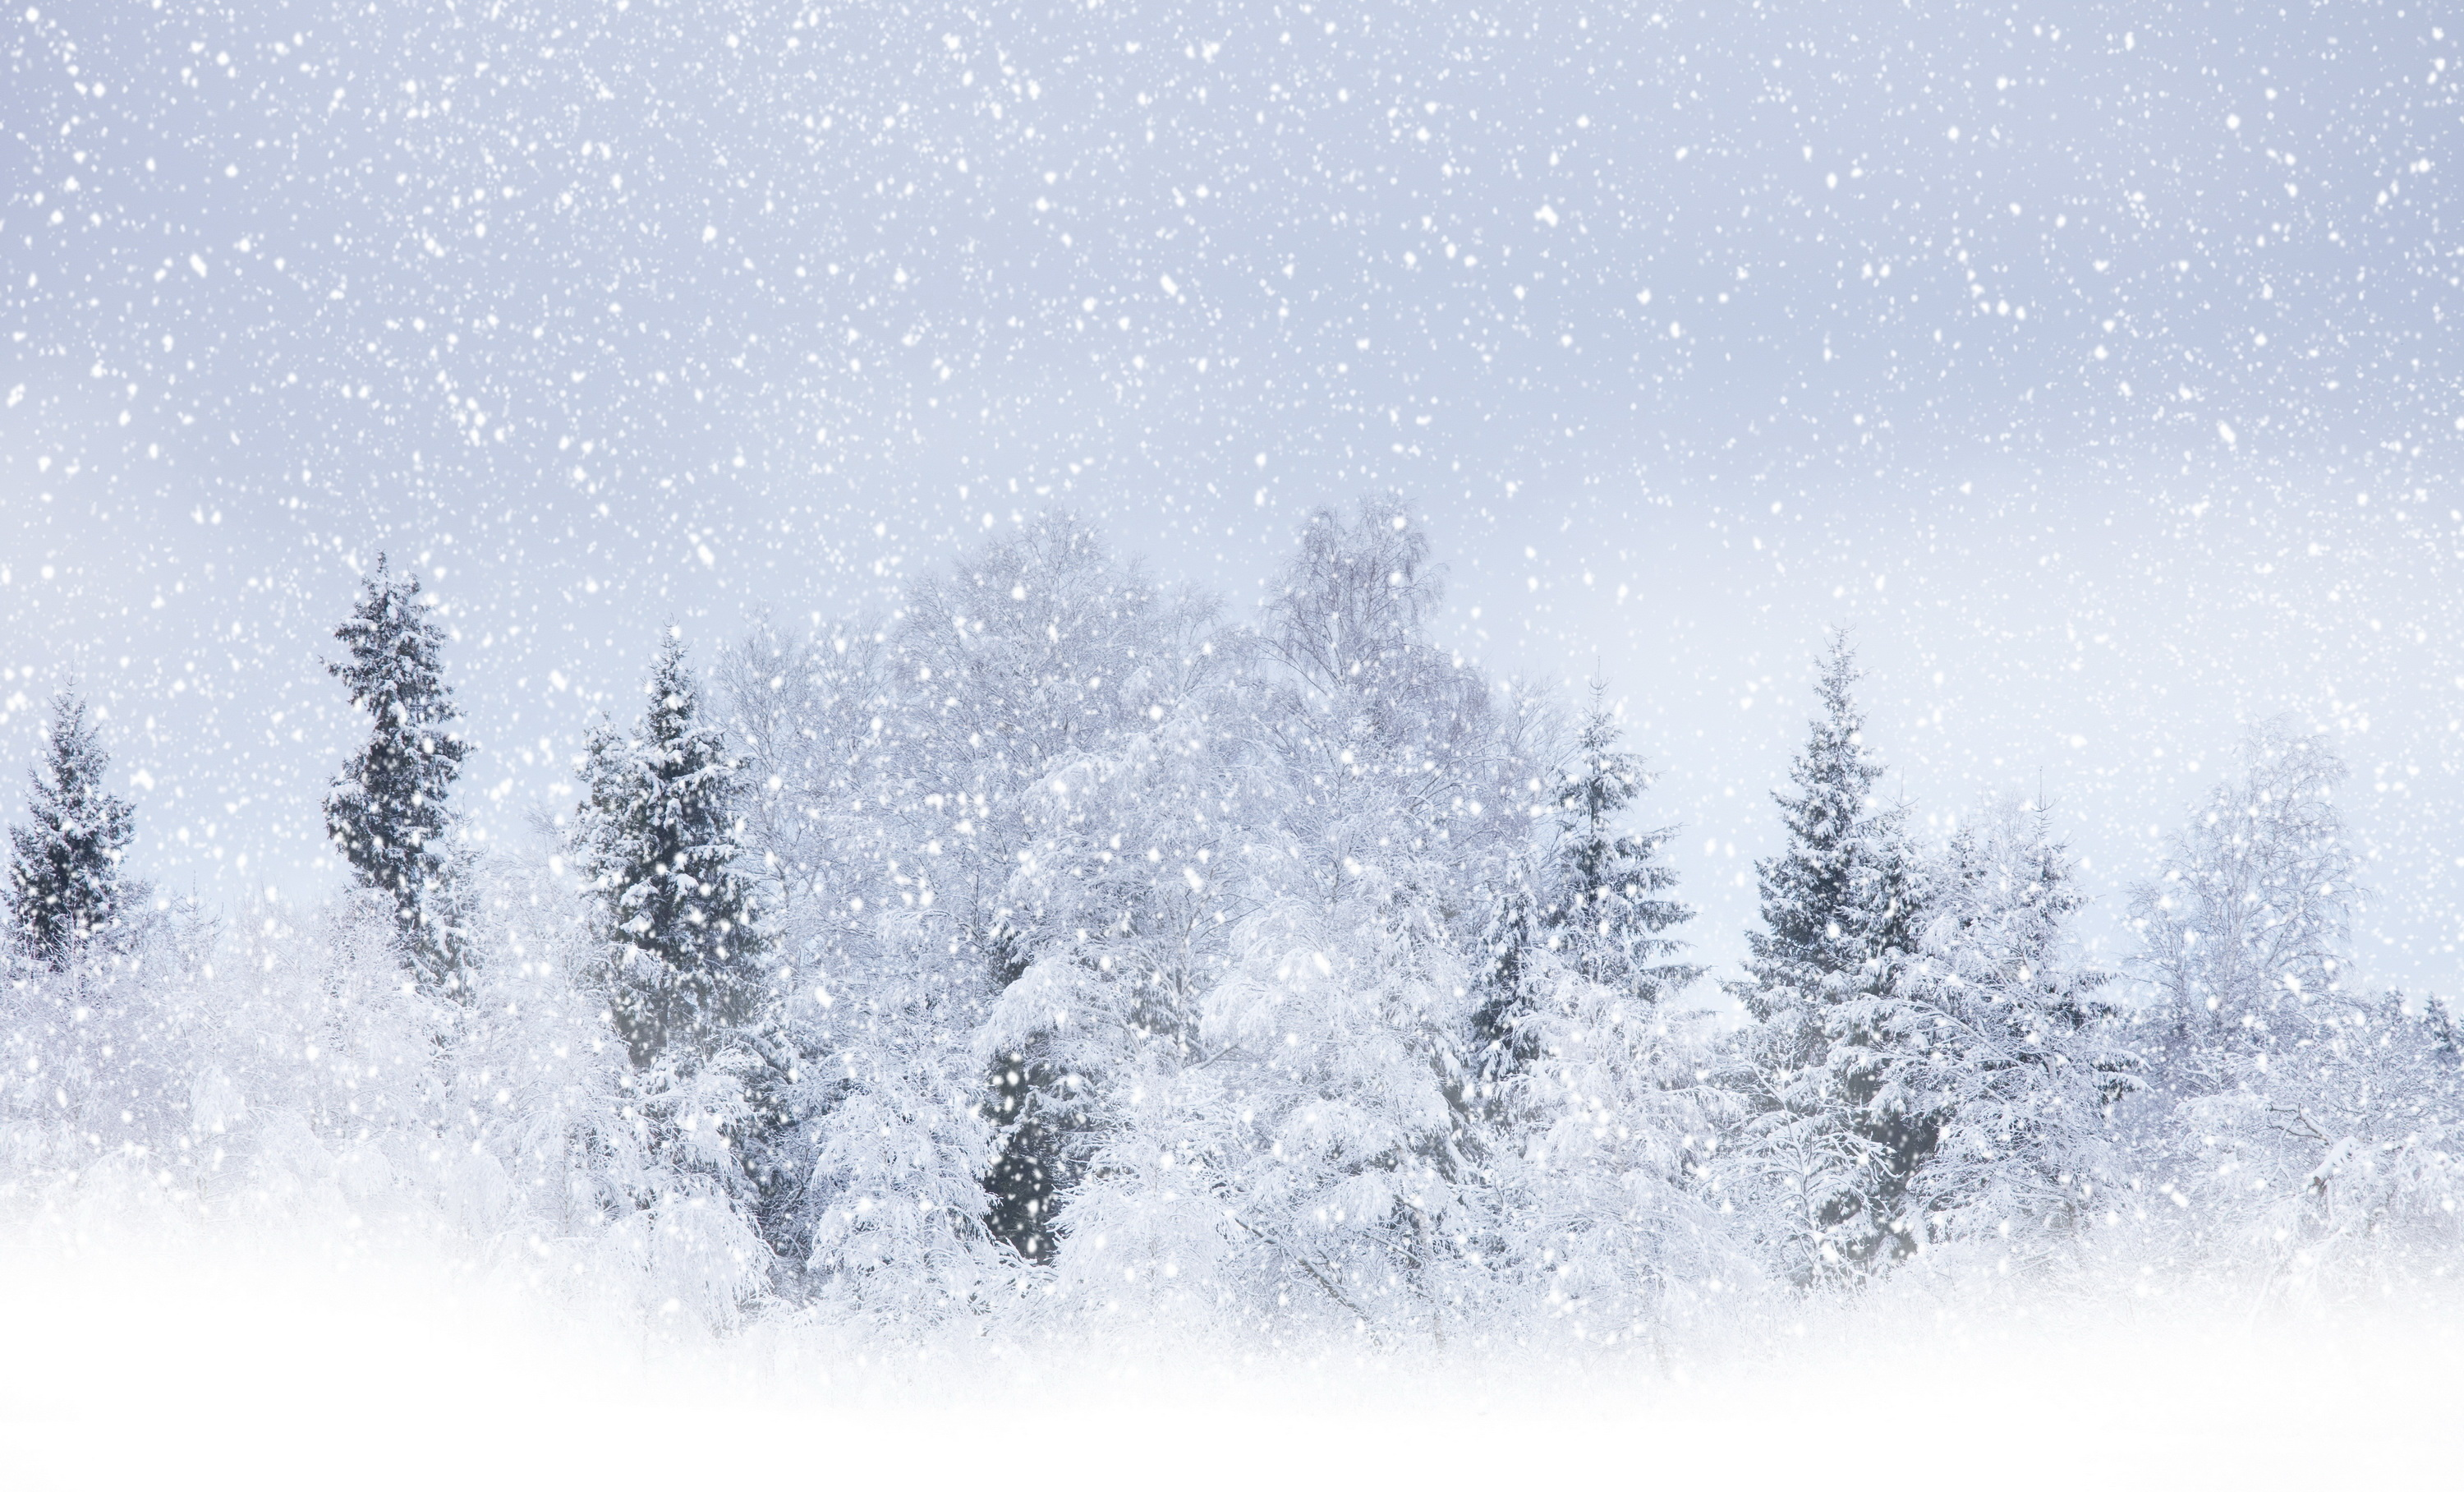 Wallpaper Winter snow tree blizzard snowstorm desktop wallpaper 3000x1816